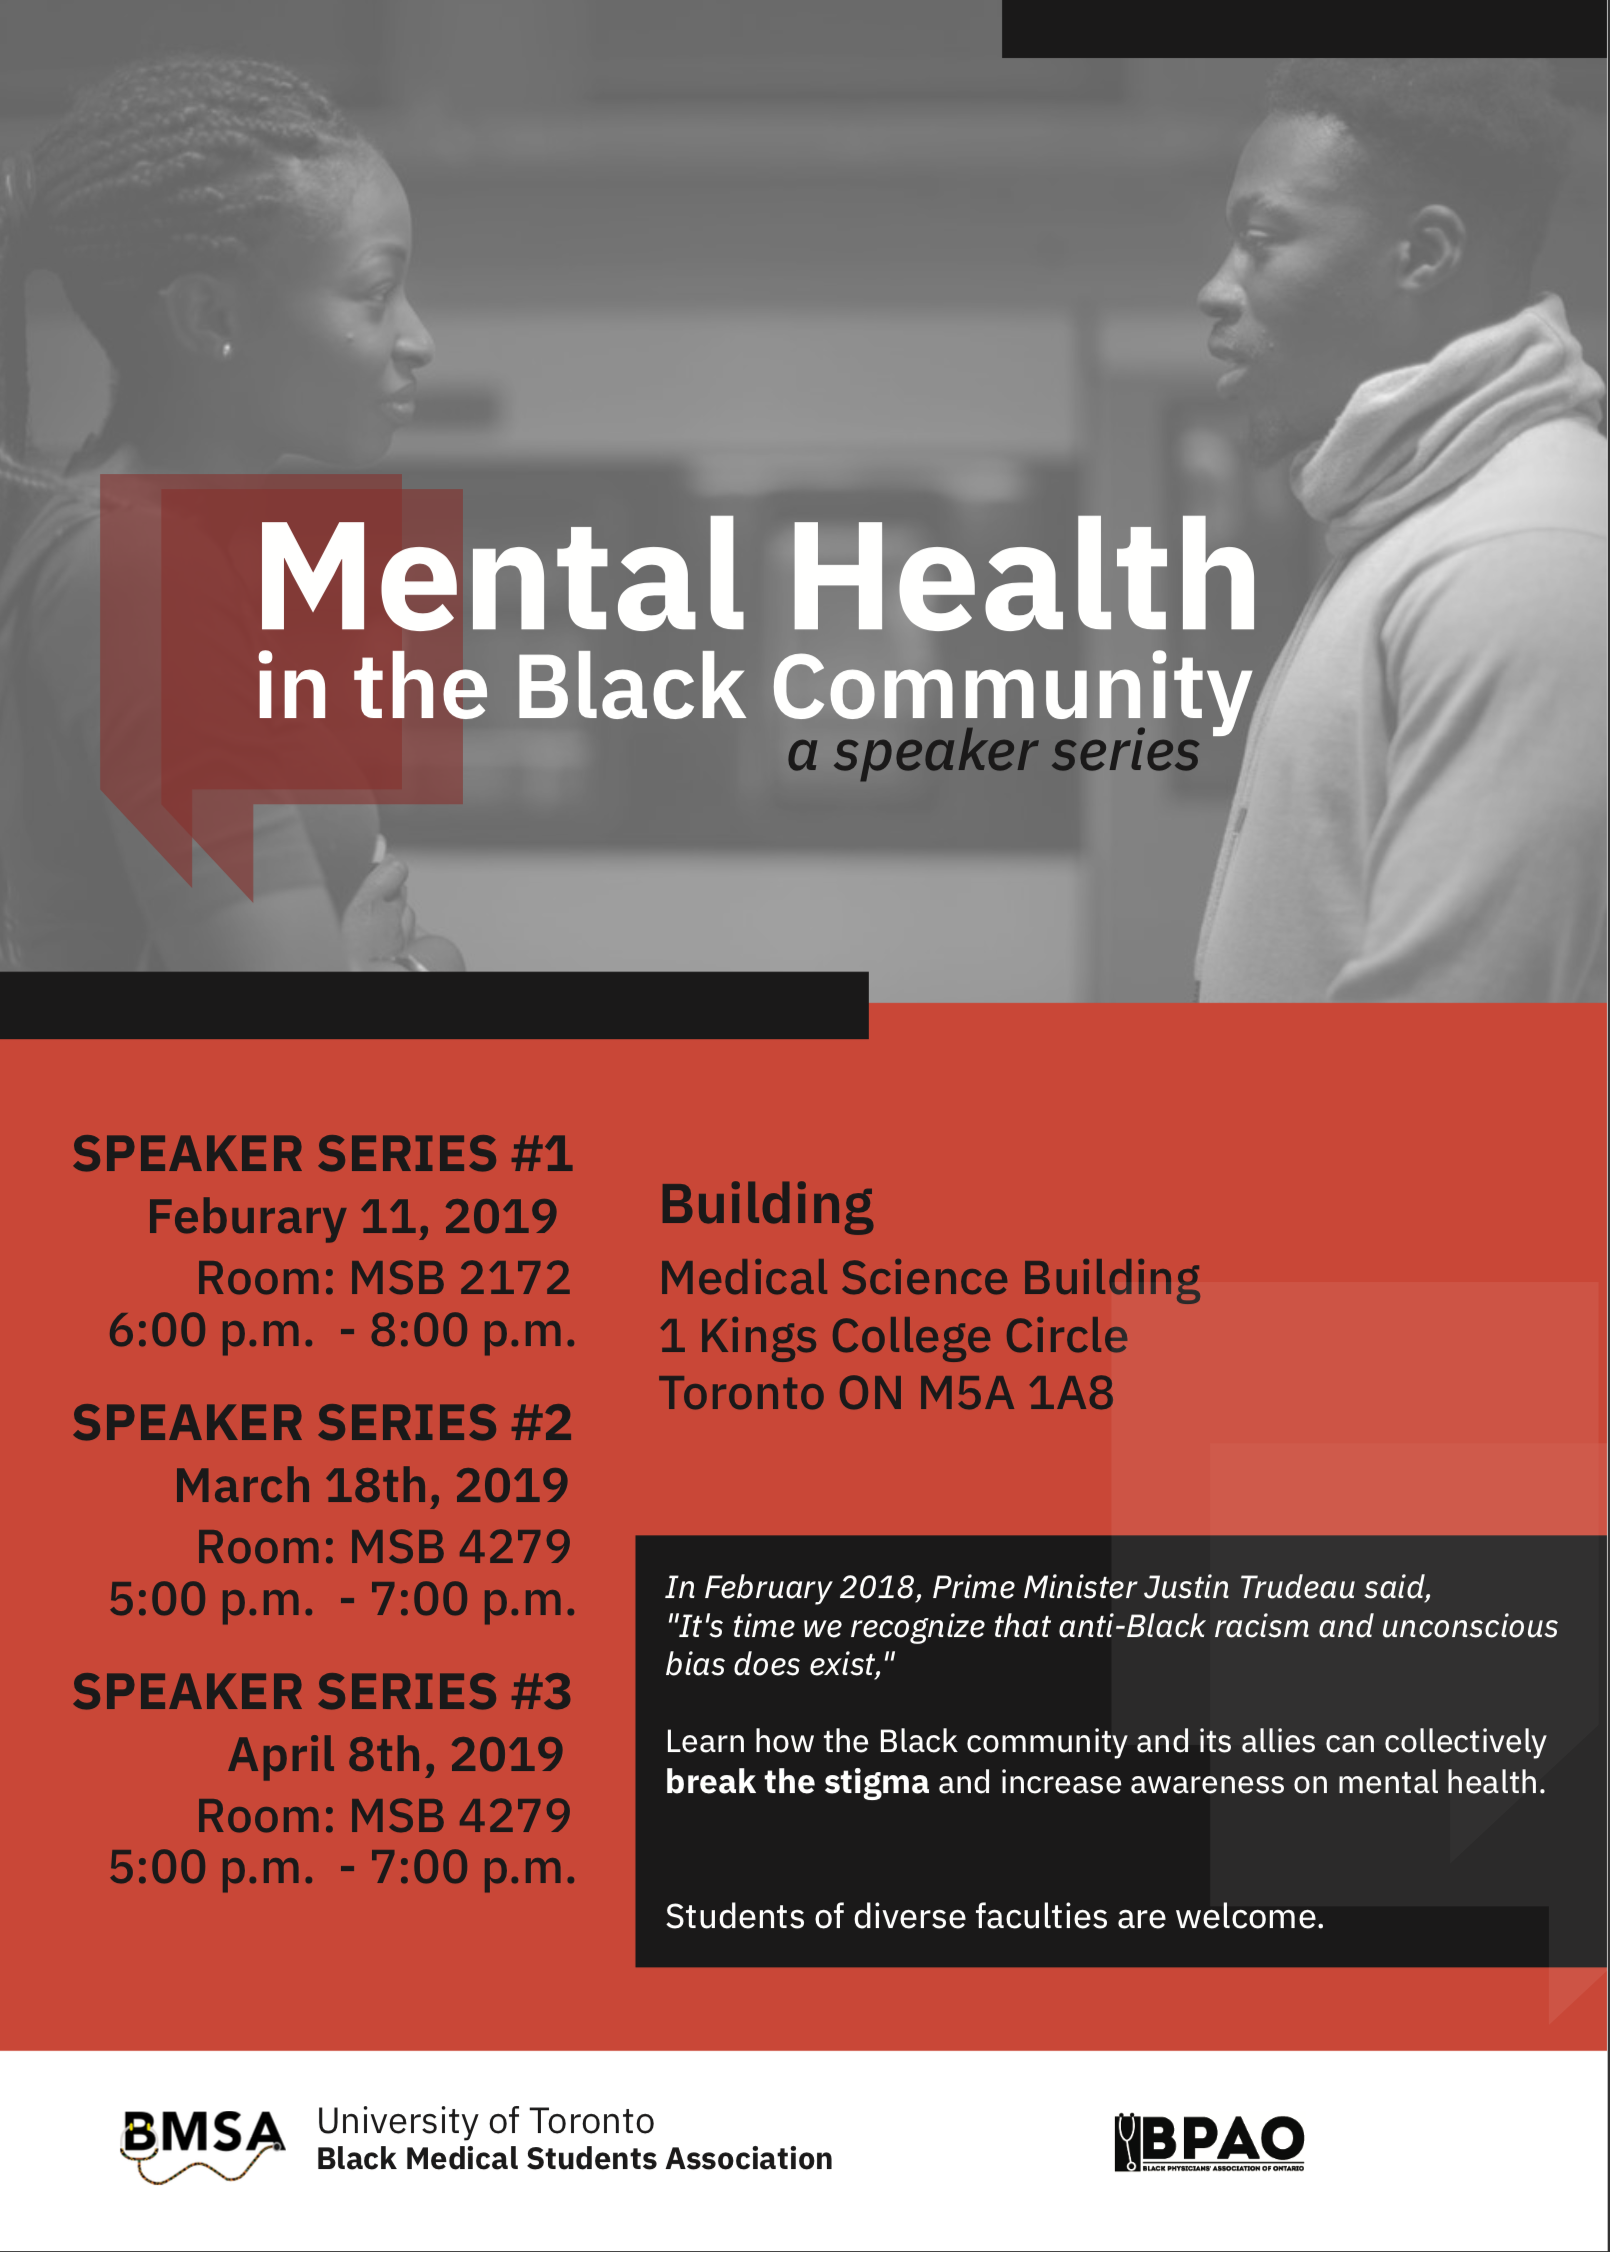 Mental Health in Black Community Poster